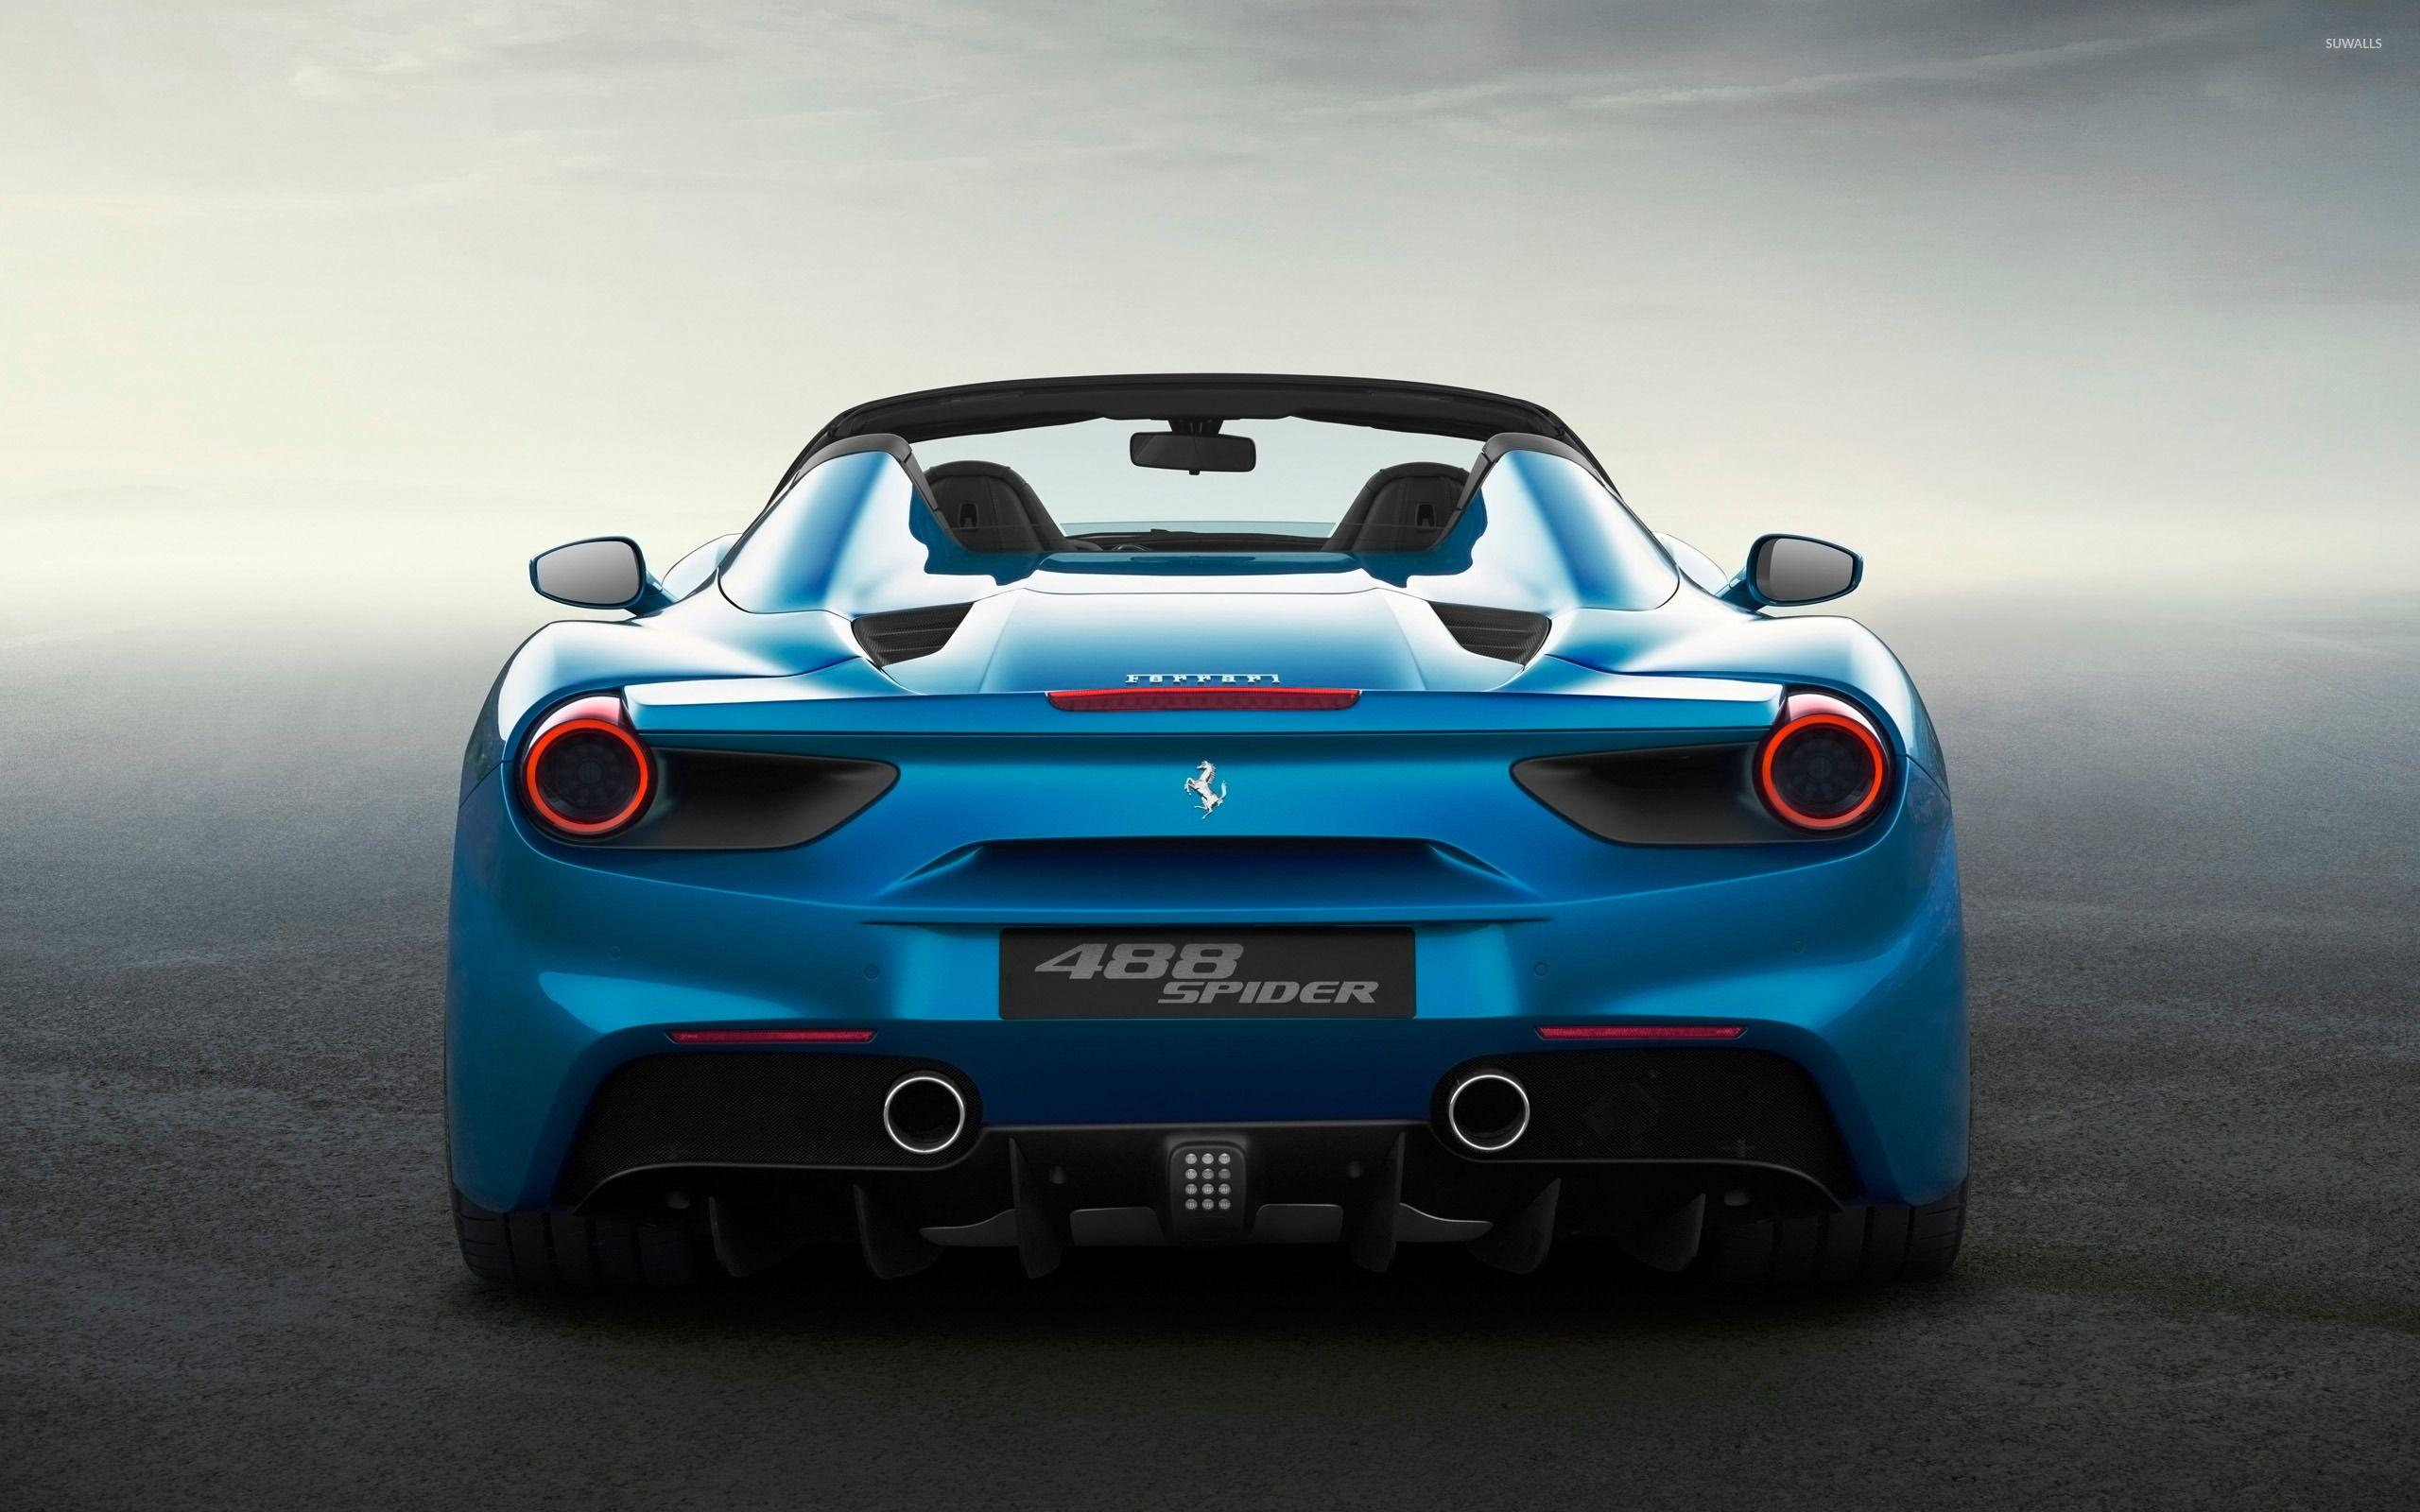 Blue Ferrari 488 Spider back view wallpapers